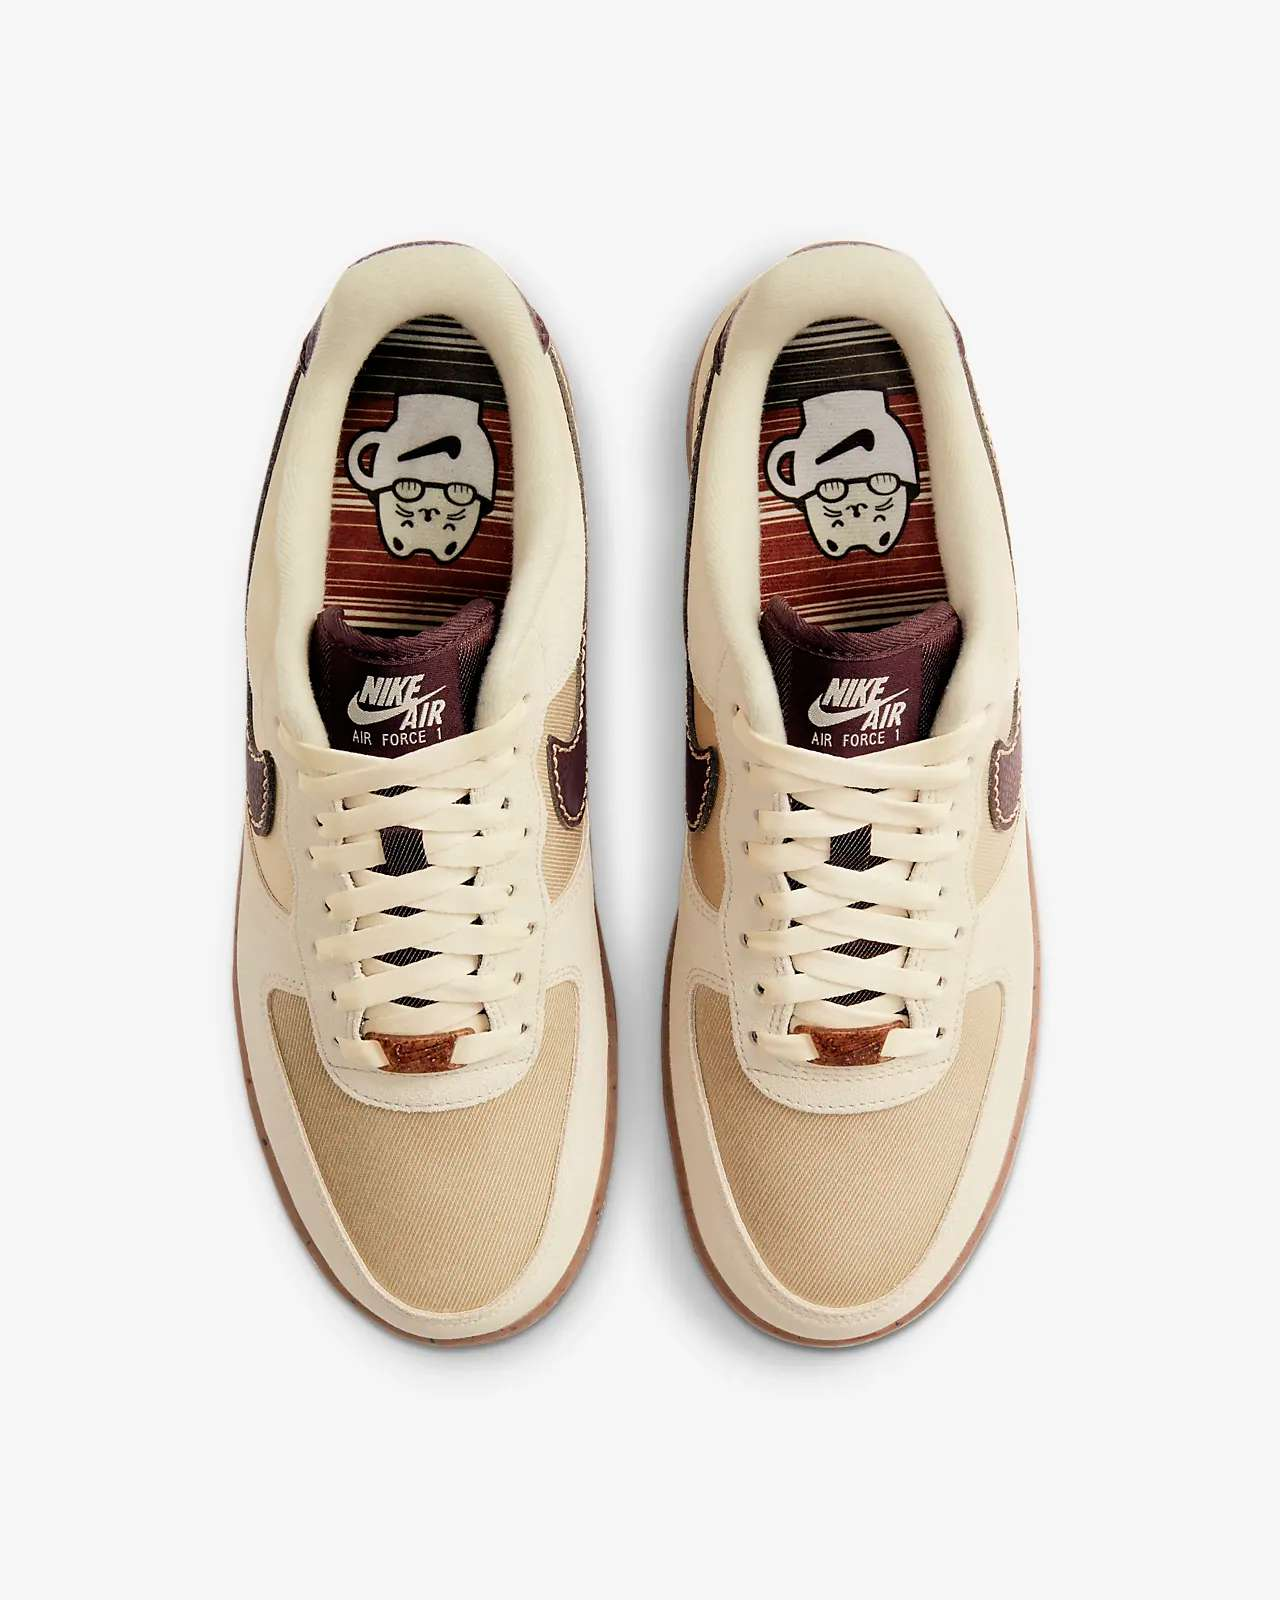 Air Force 1 Low COFFEE-THEMED   ついついゴッ